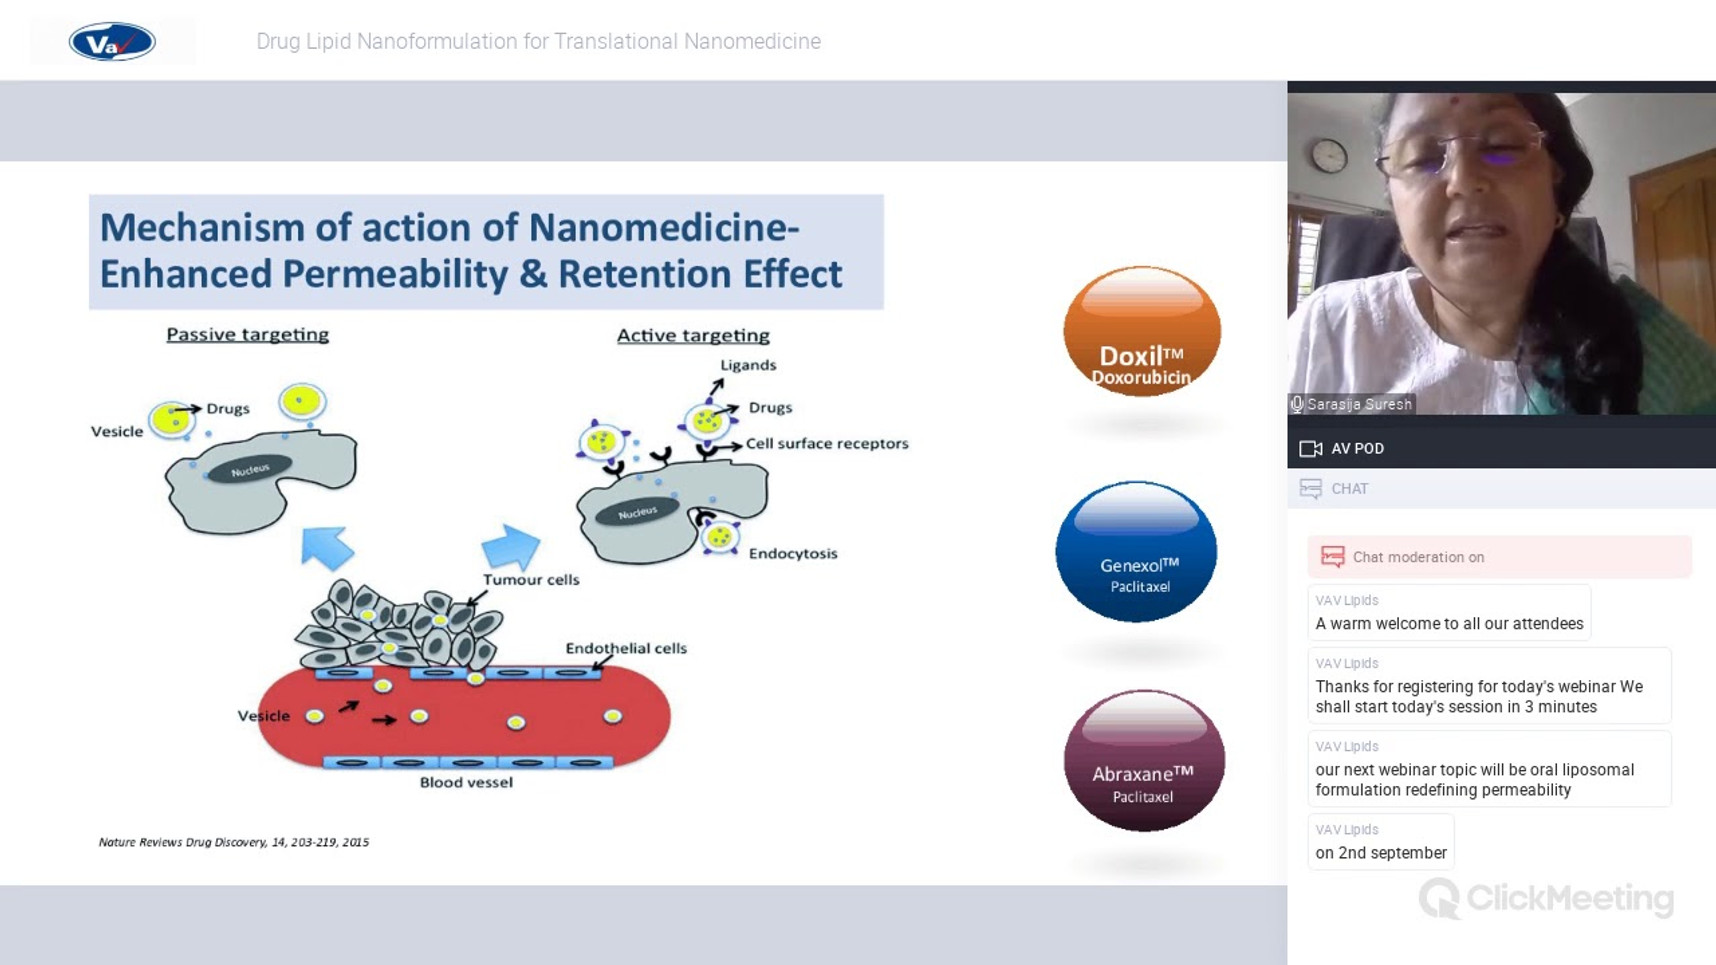 Drug Lipid Nanoformulation for translational Nanomedicine